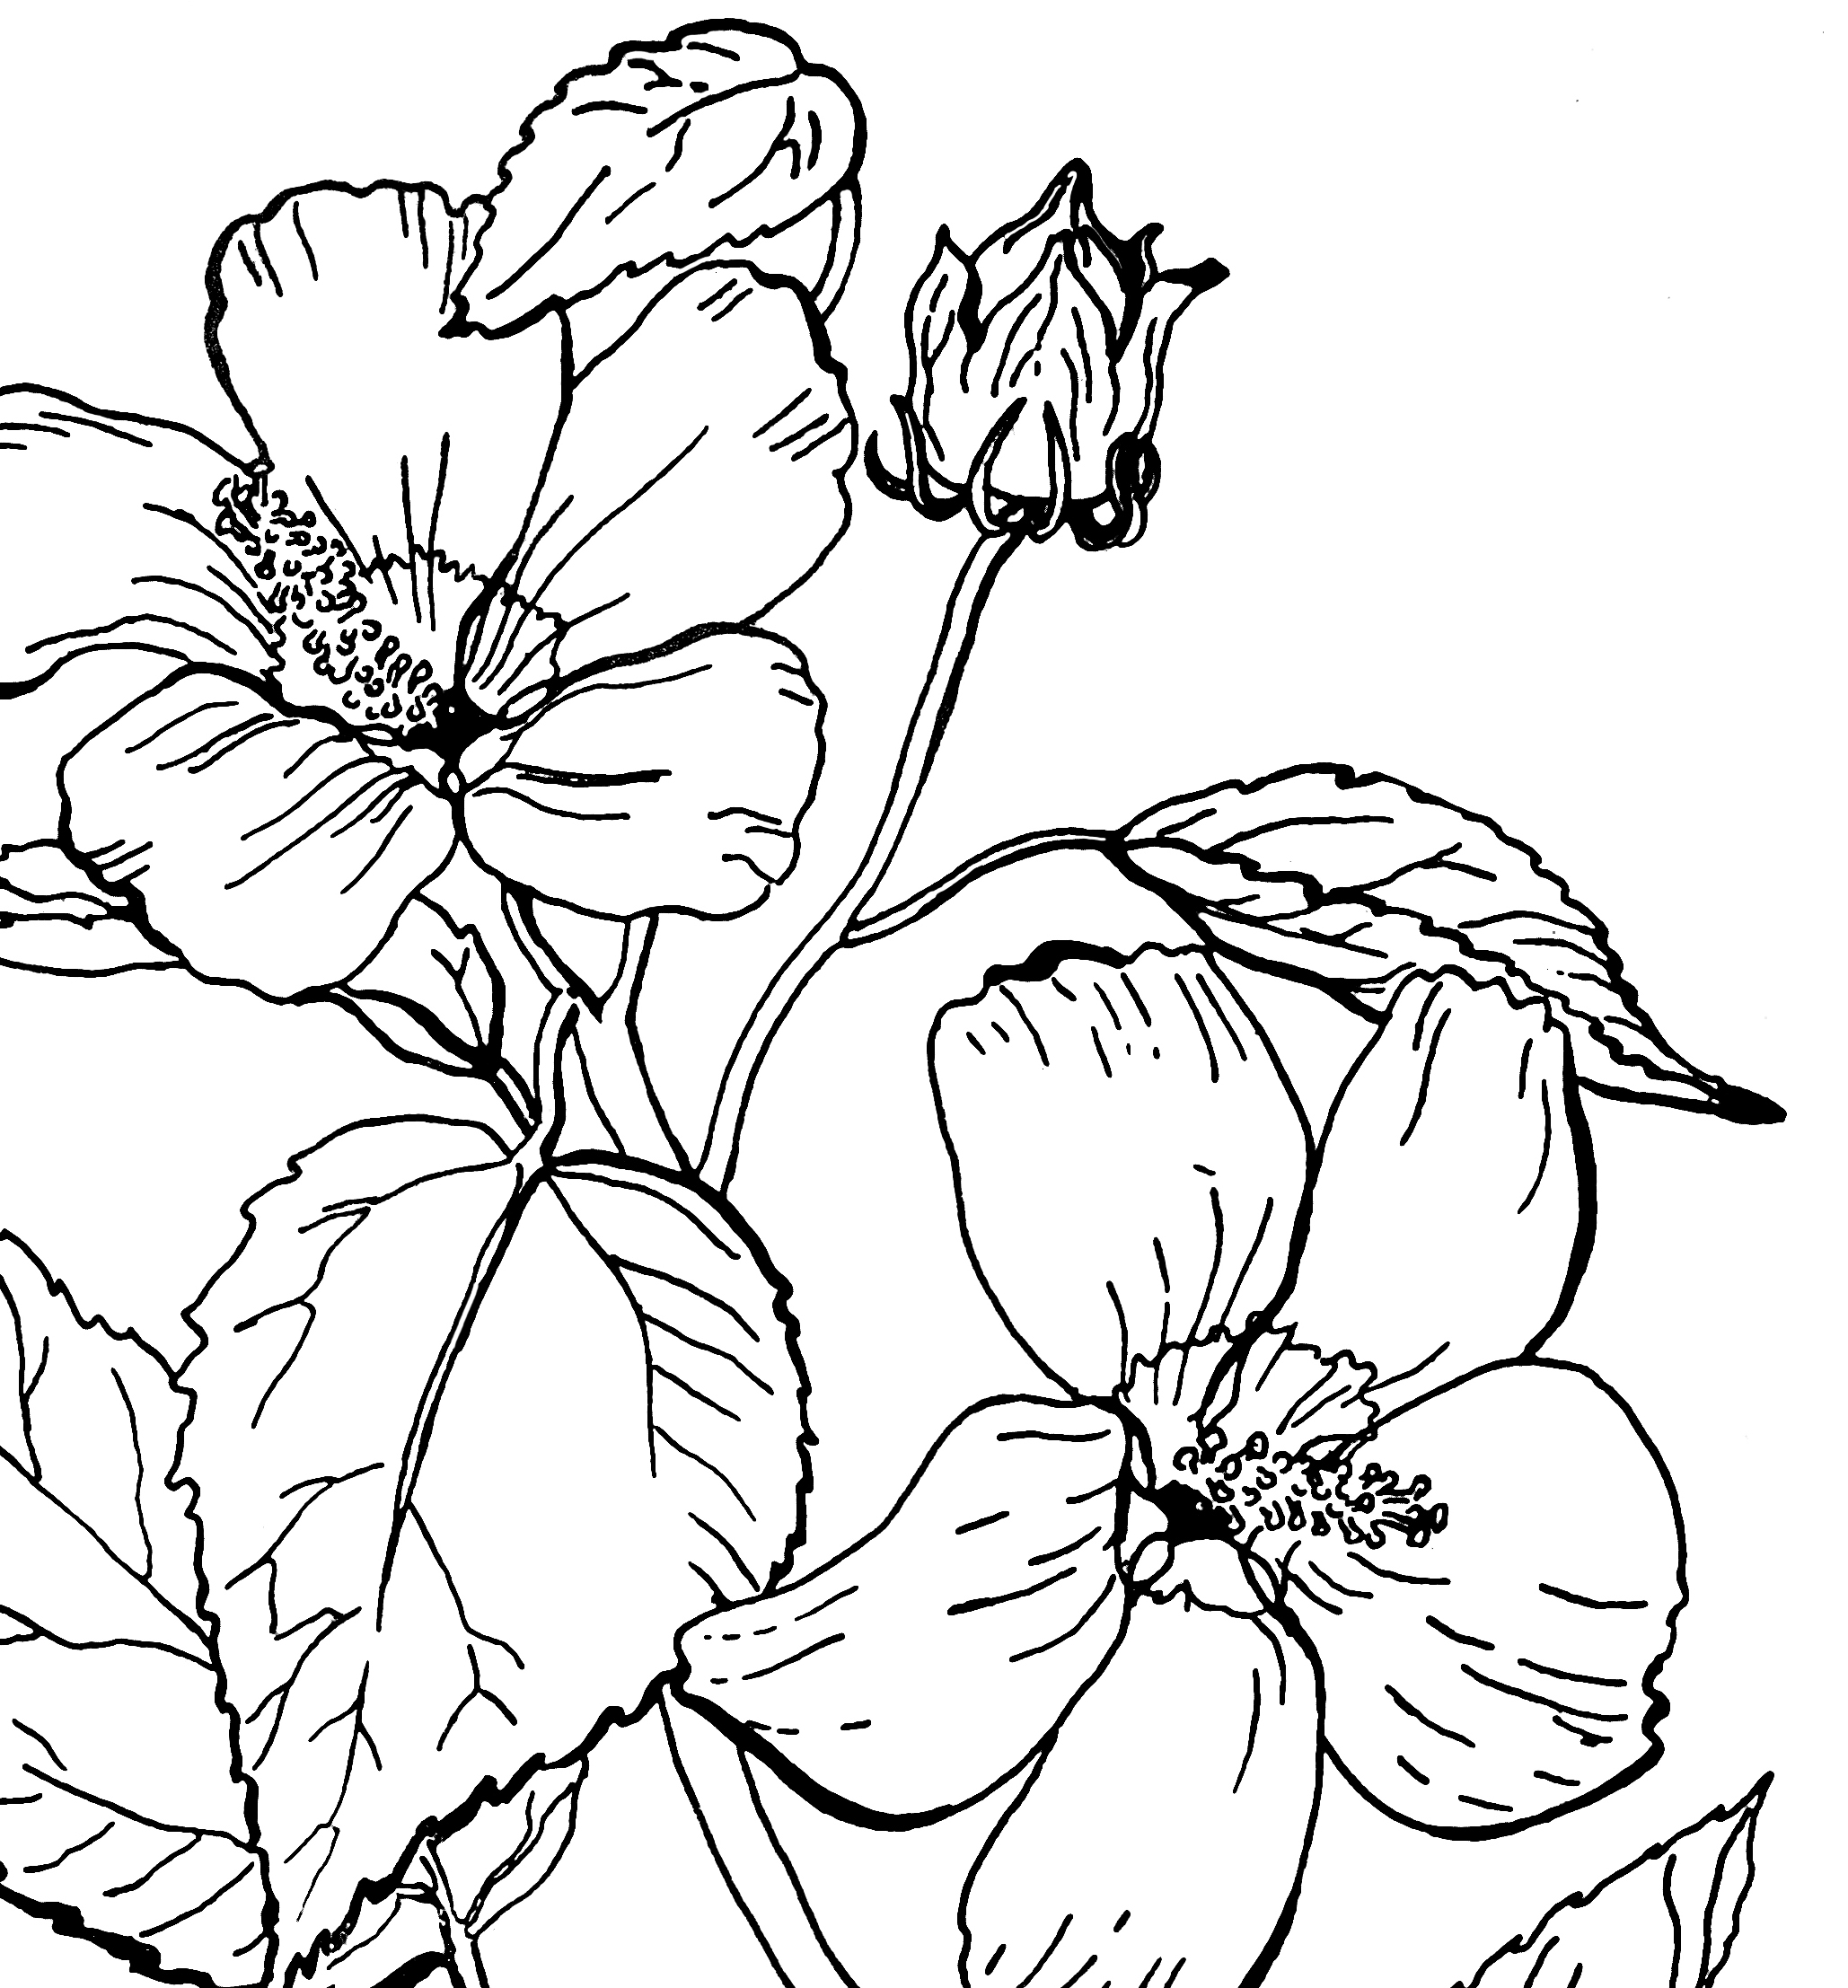 rose coloring book page rose flower blooming coloring page kids play color rose page book coloring